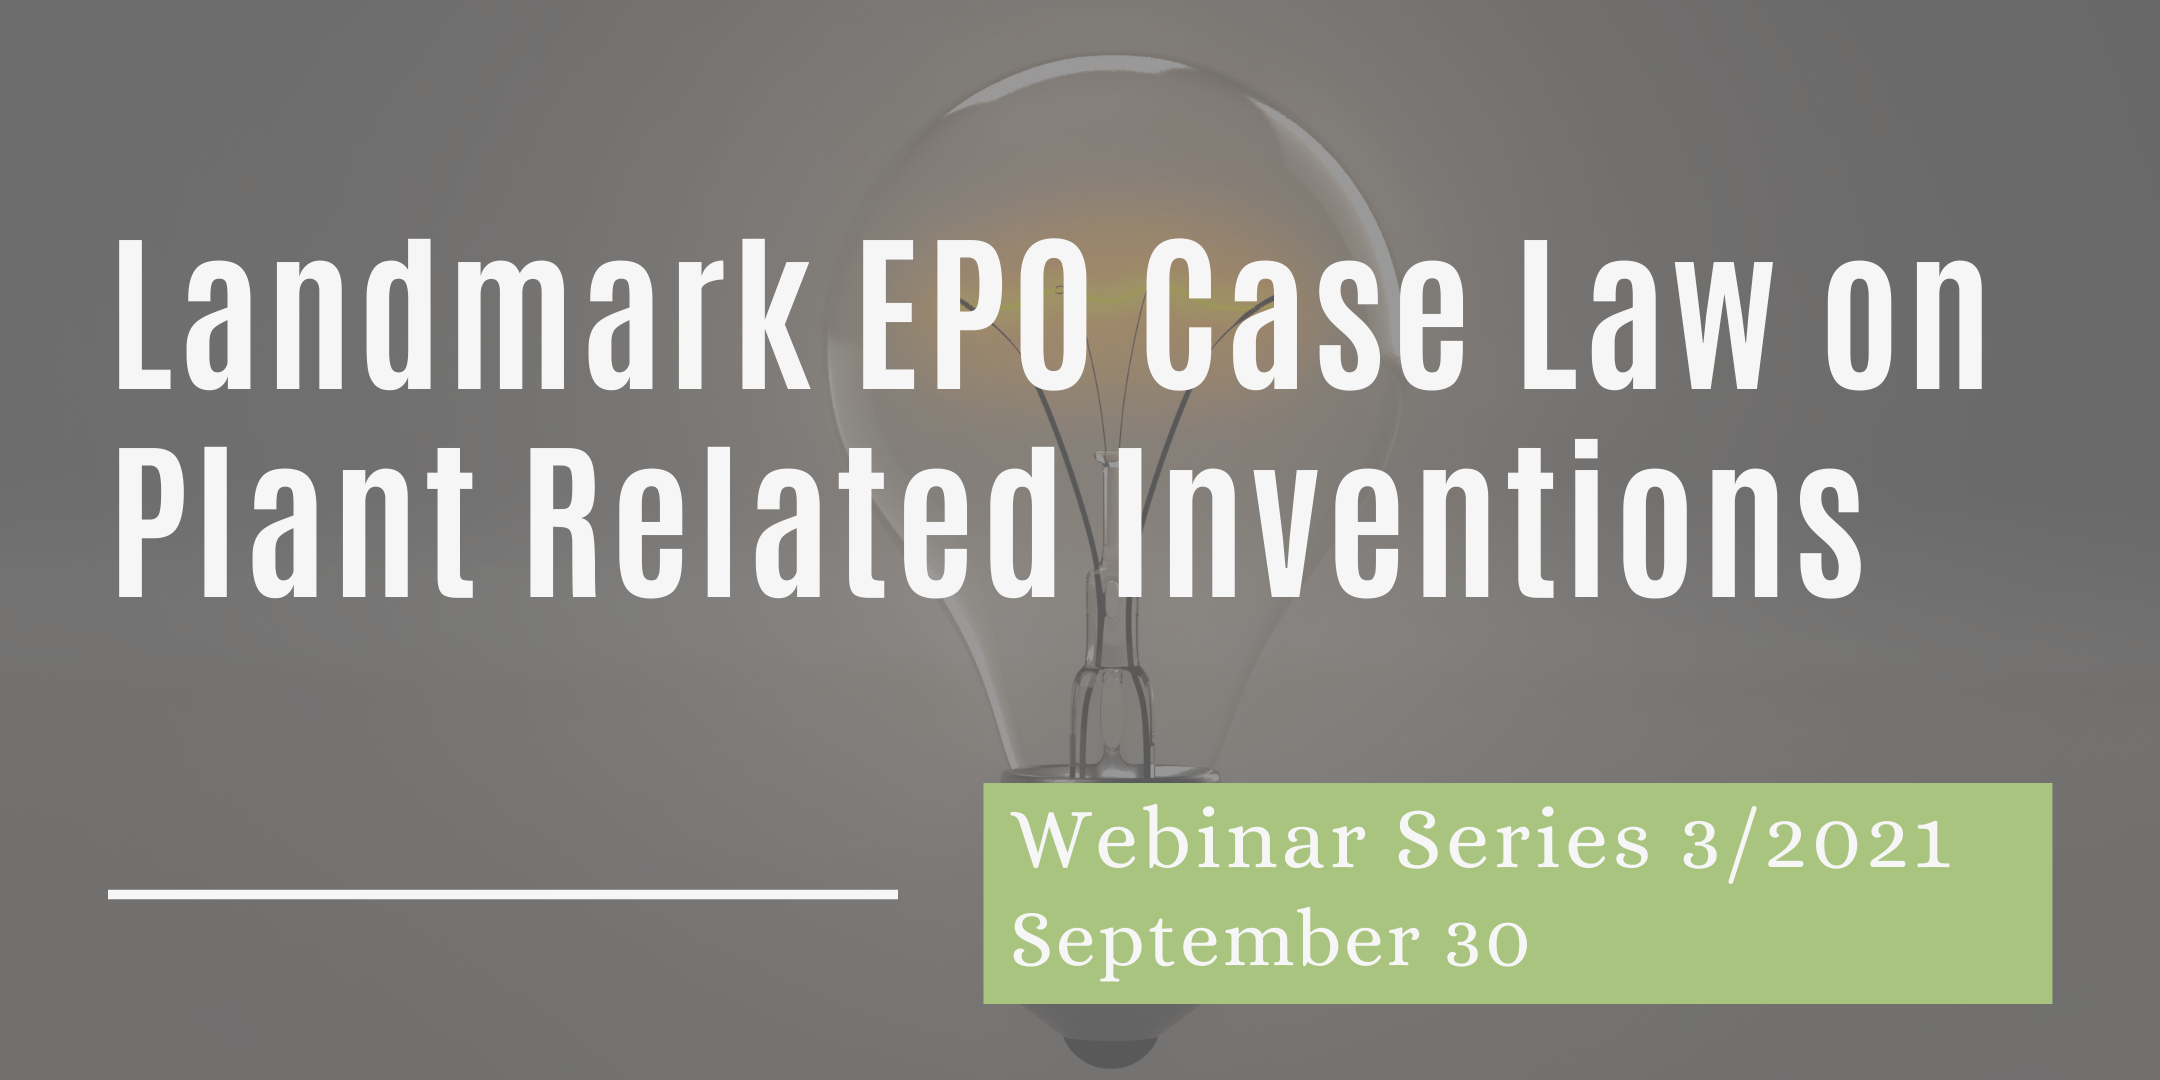 30/9/21 – Webinar 4. Landmark Case Law of the EPO in Plant Related Inventions